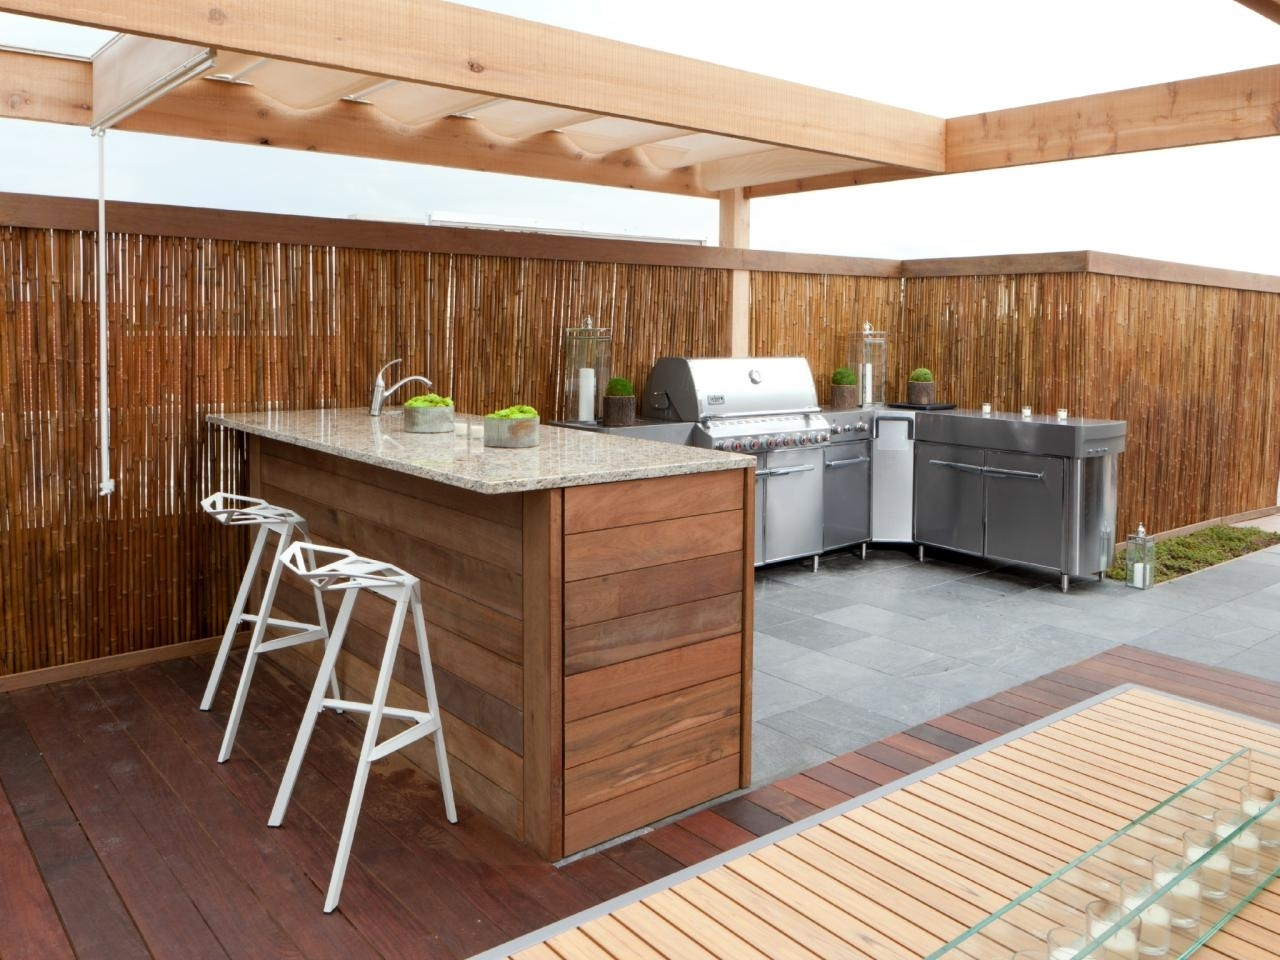 Kitchen Crashers Diy For Outdoor Deck Kitchens Outdoor Deck Kitchens Perfect For All Family